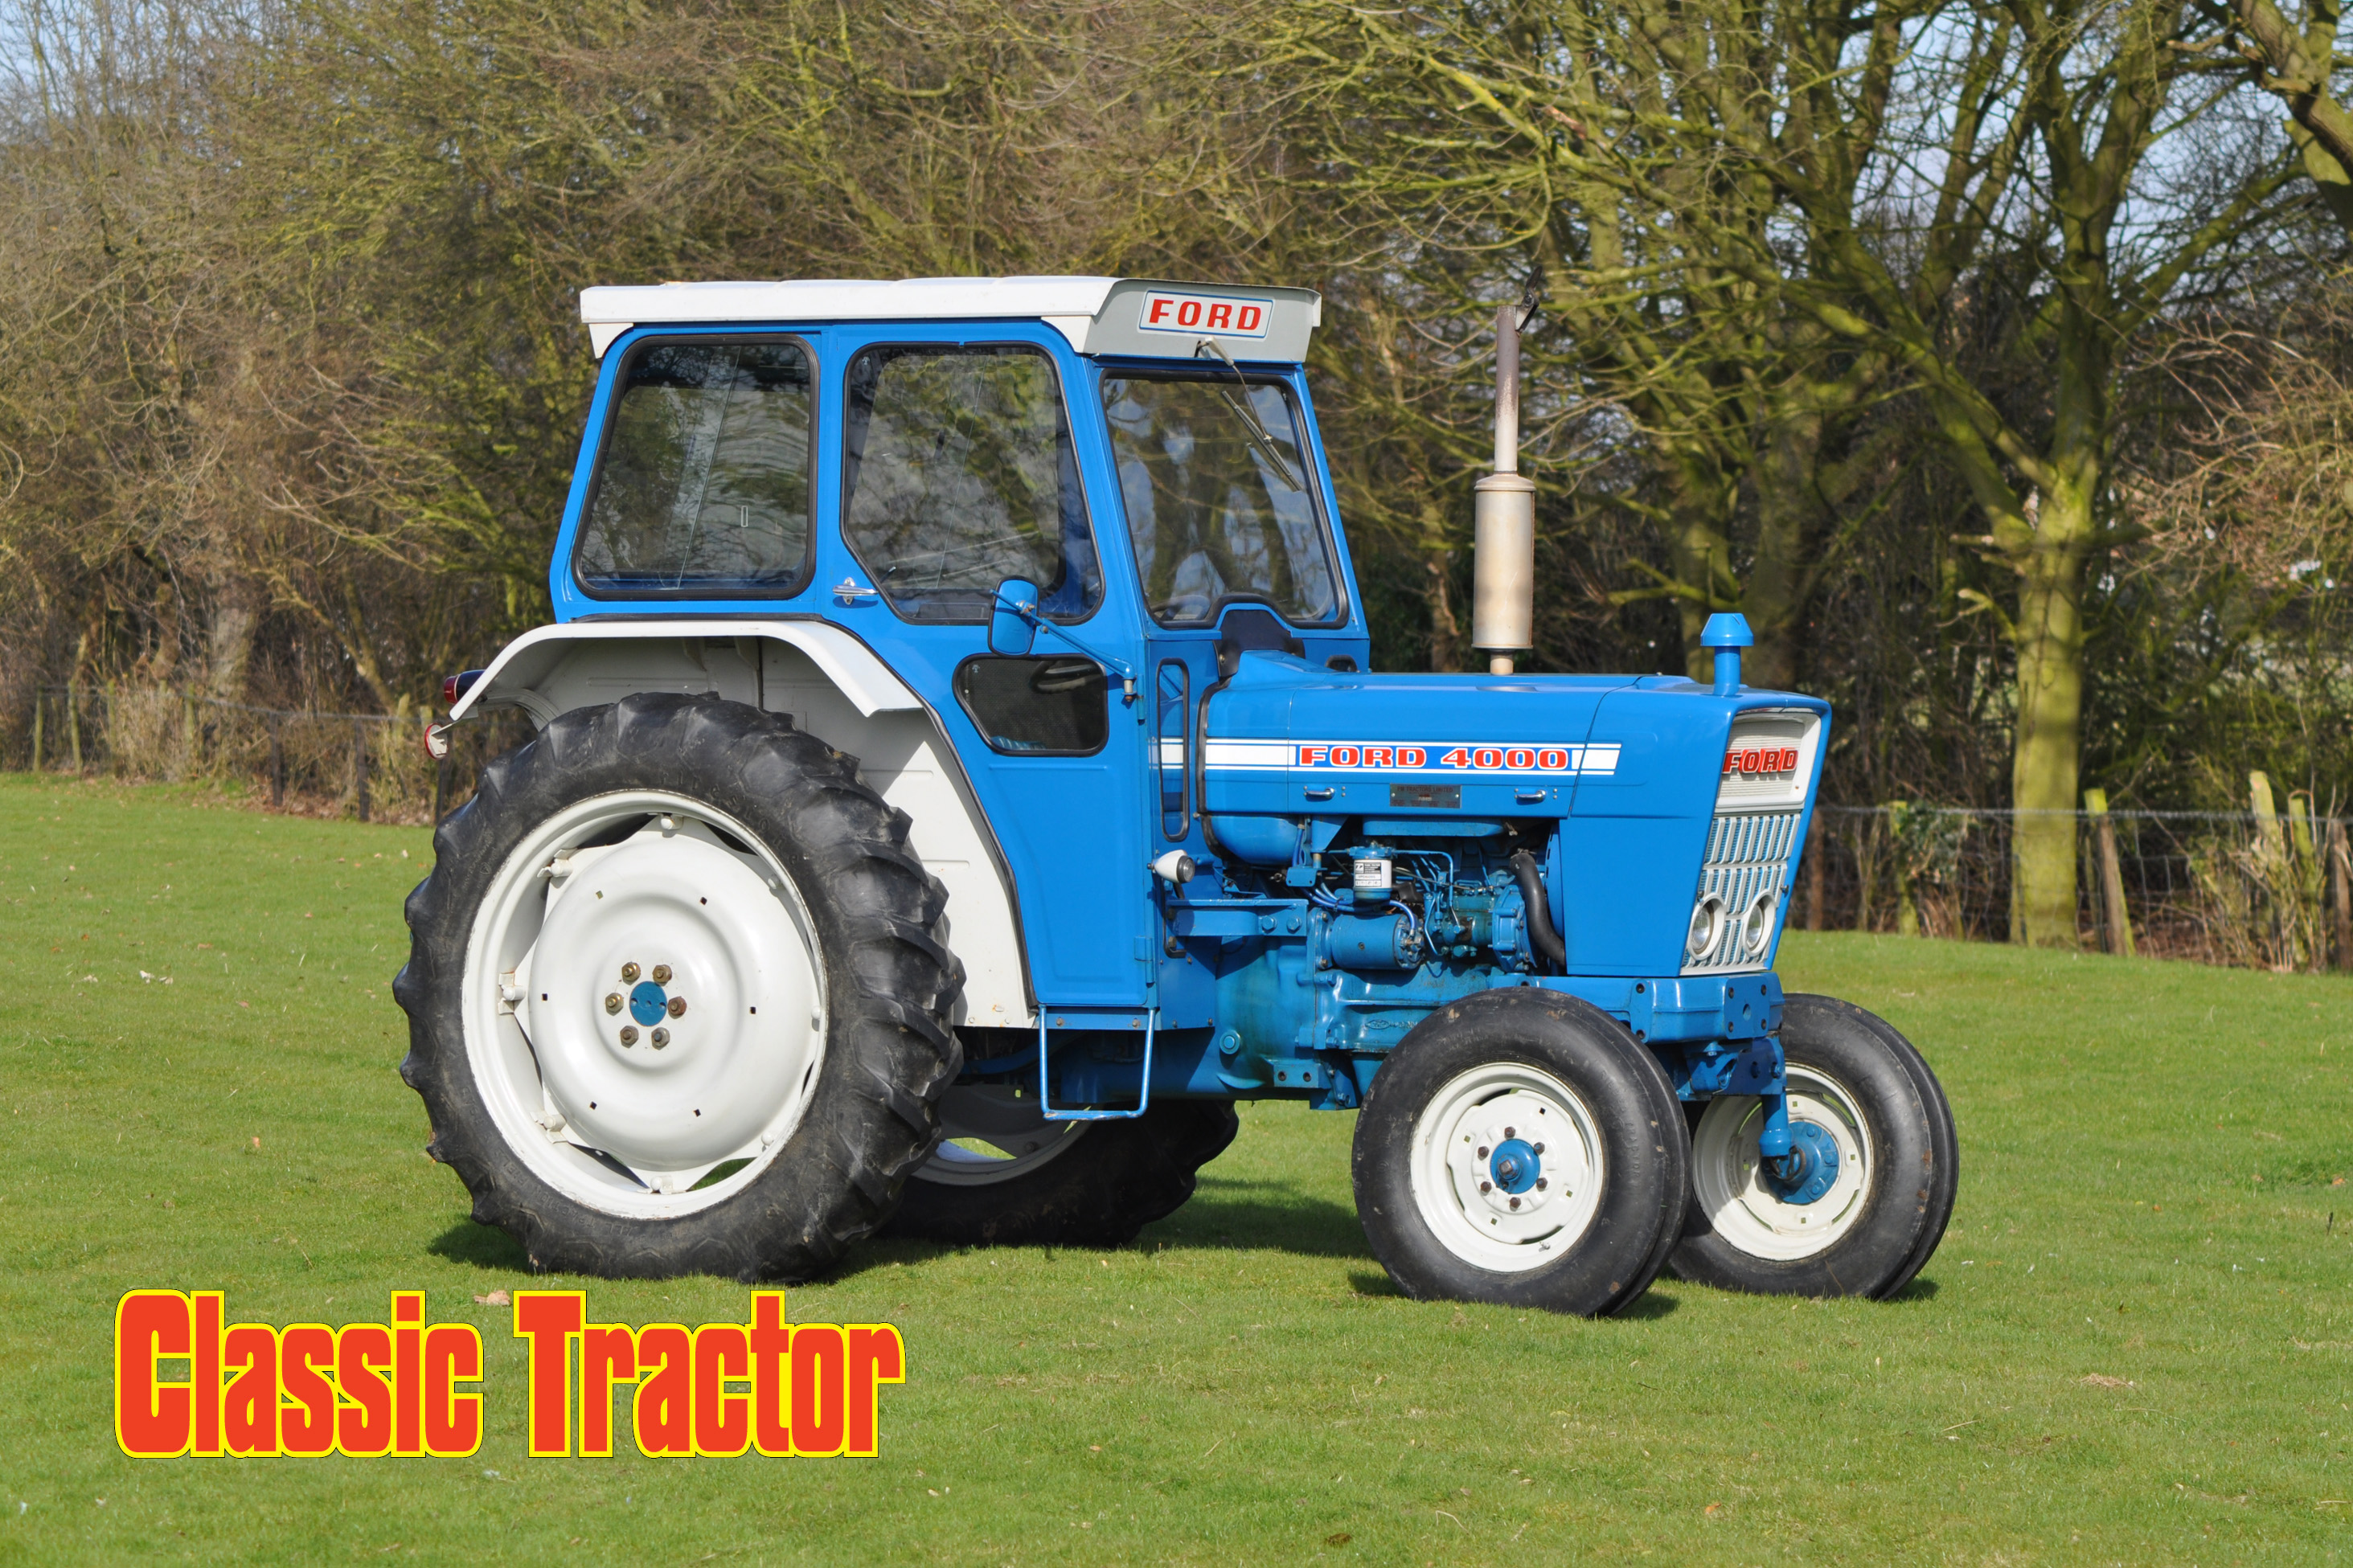 Ford Tractor Company : Ford tractor for sale in ireland